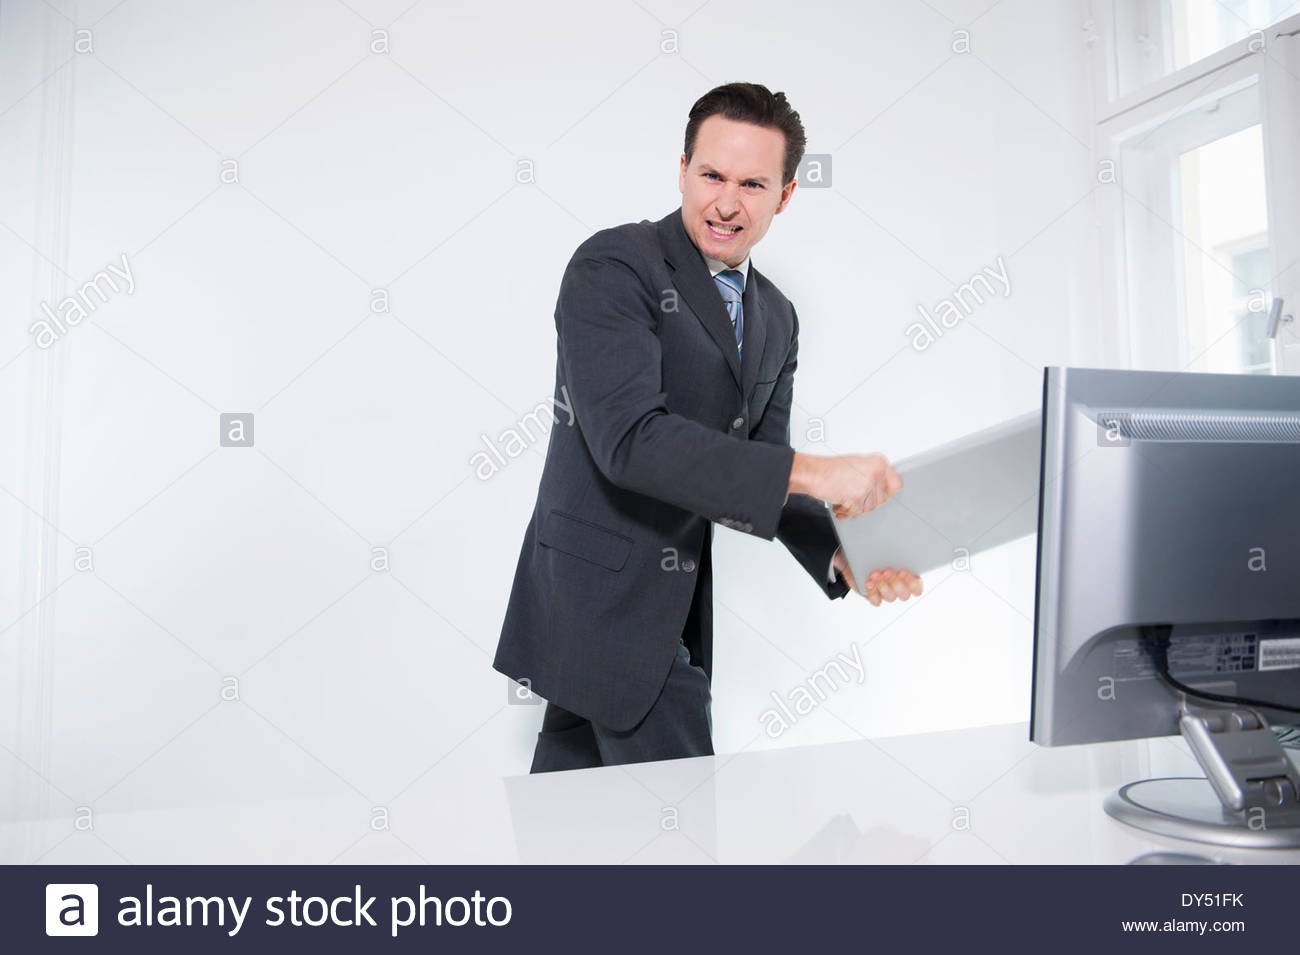 Businessman carrying off laptop from office - Stock Image